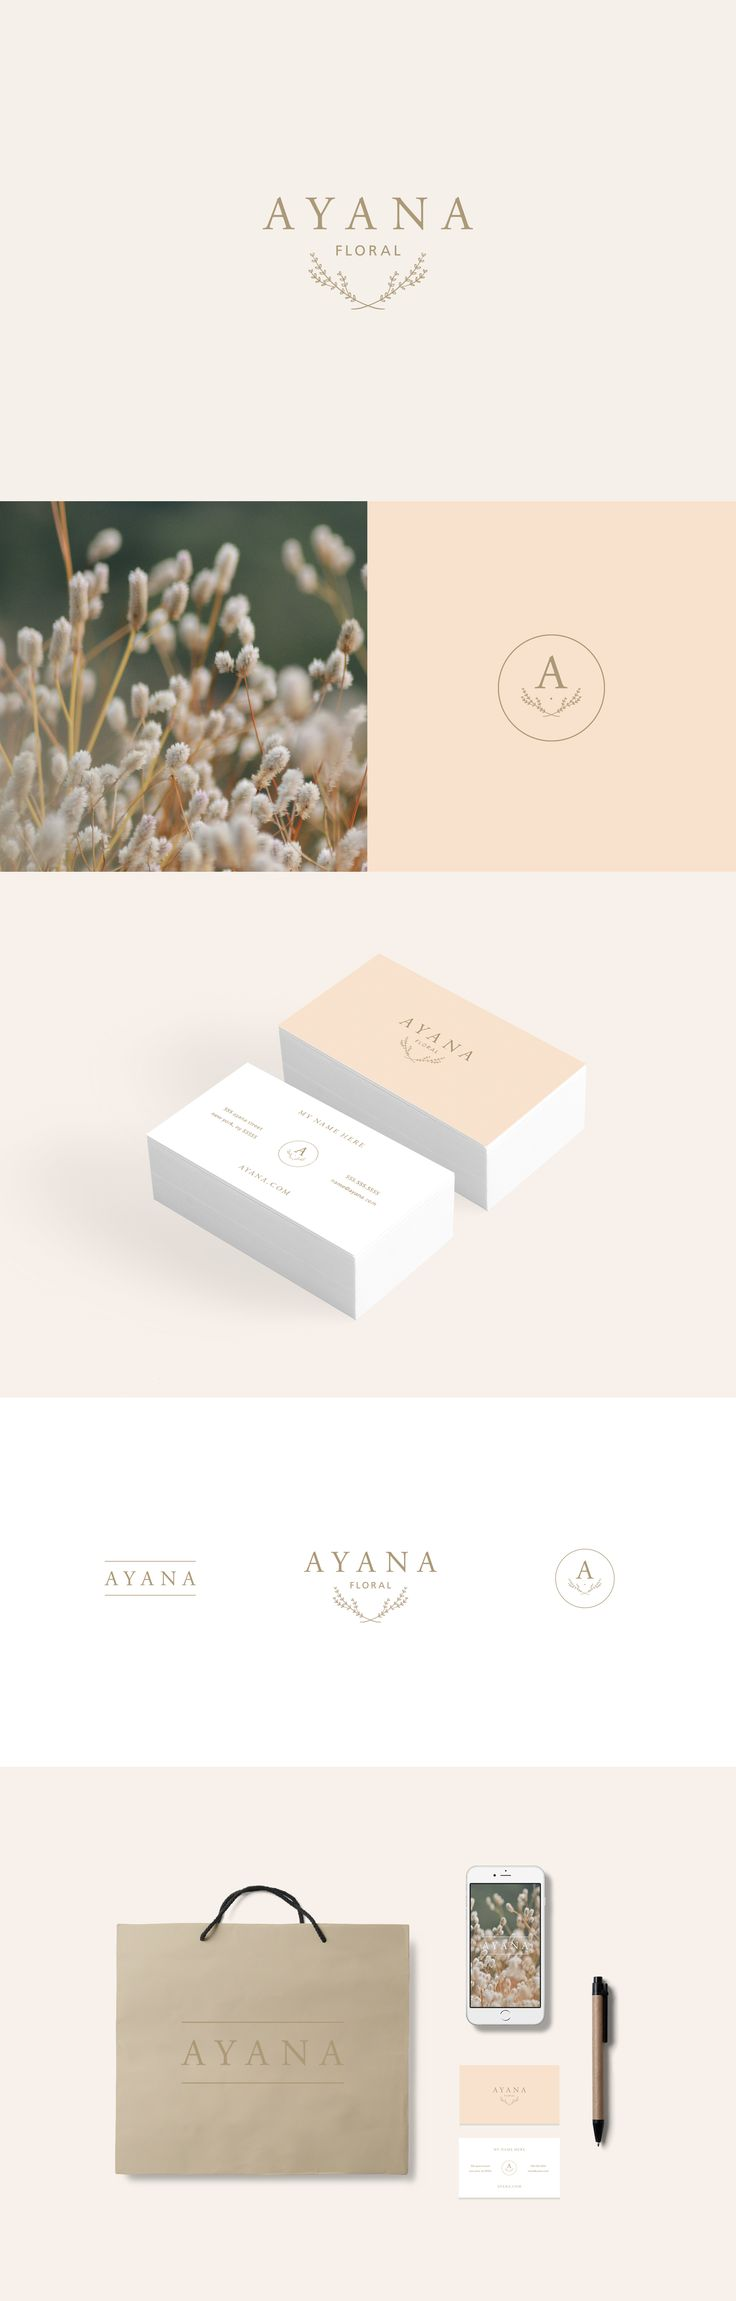 floral branding kit, branding, inspiration, brand identity, logo design, business card design, pink, stylish, minimal, stylish, graphic design